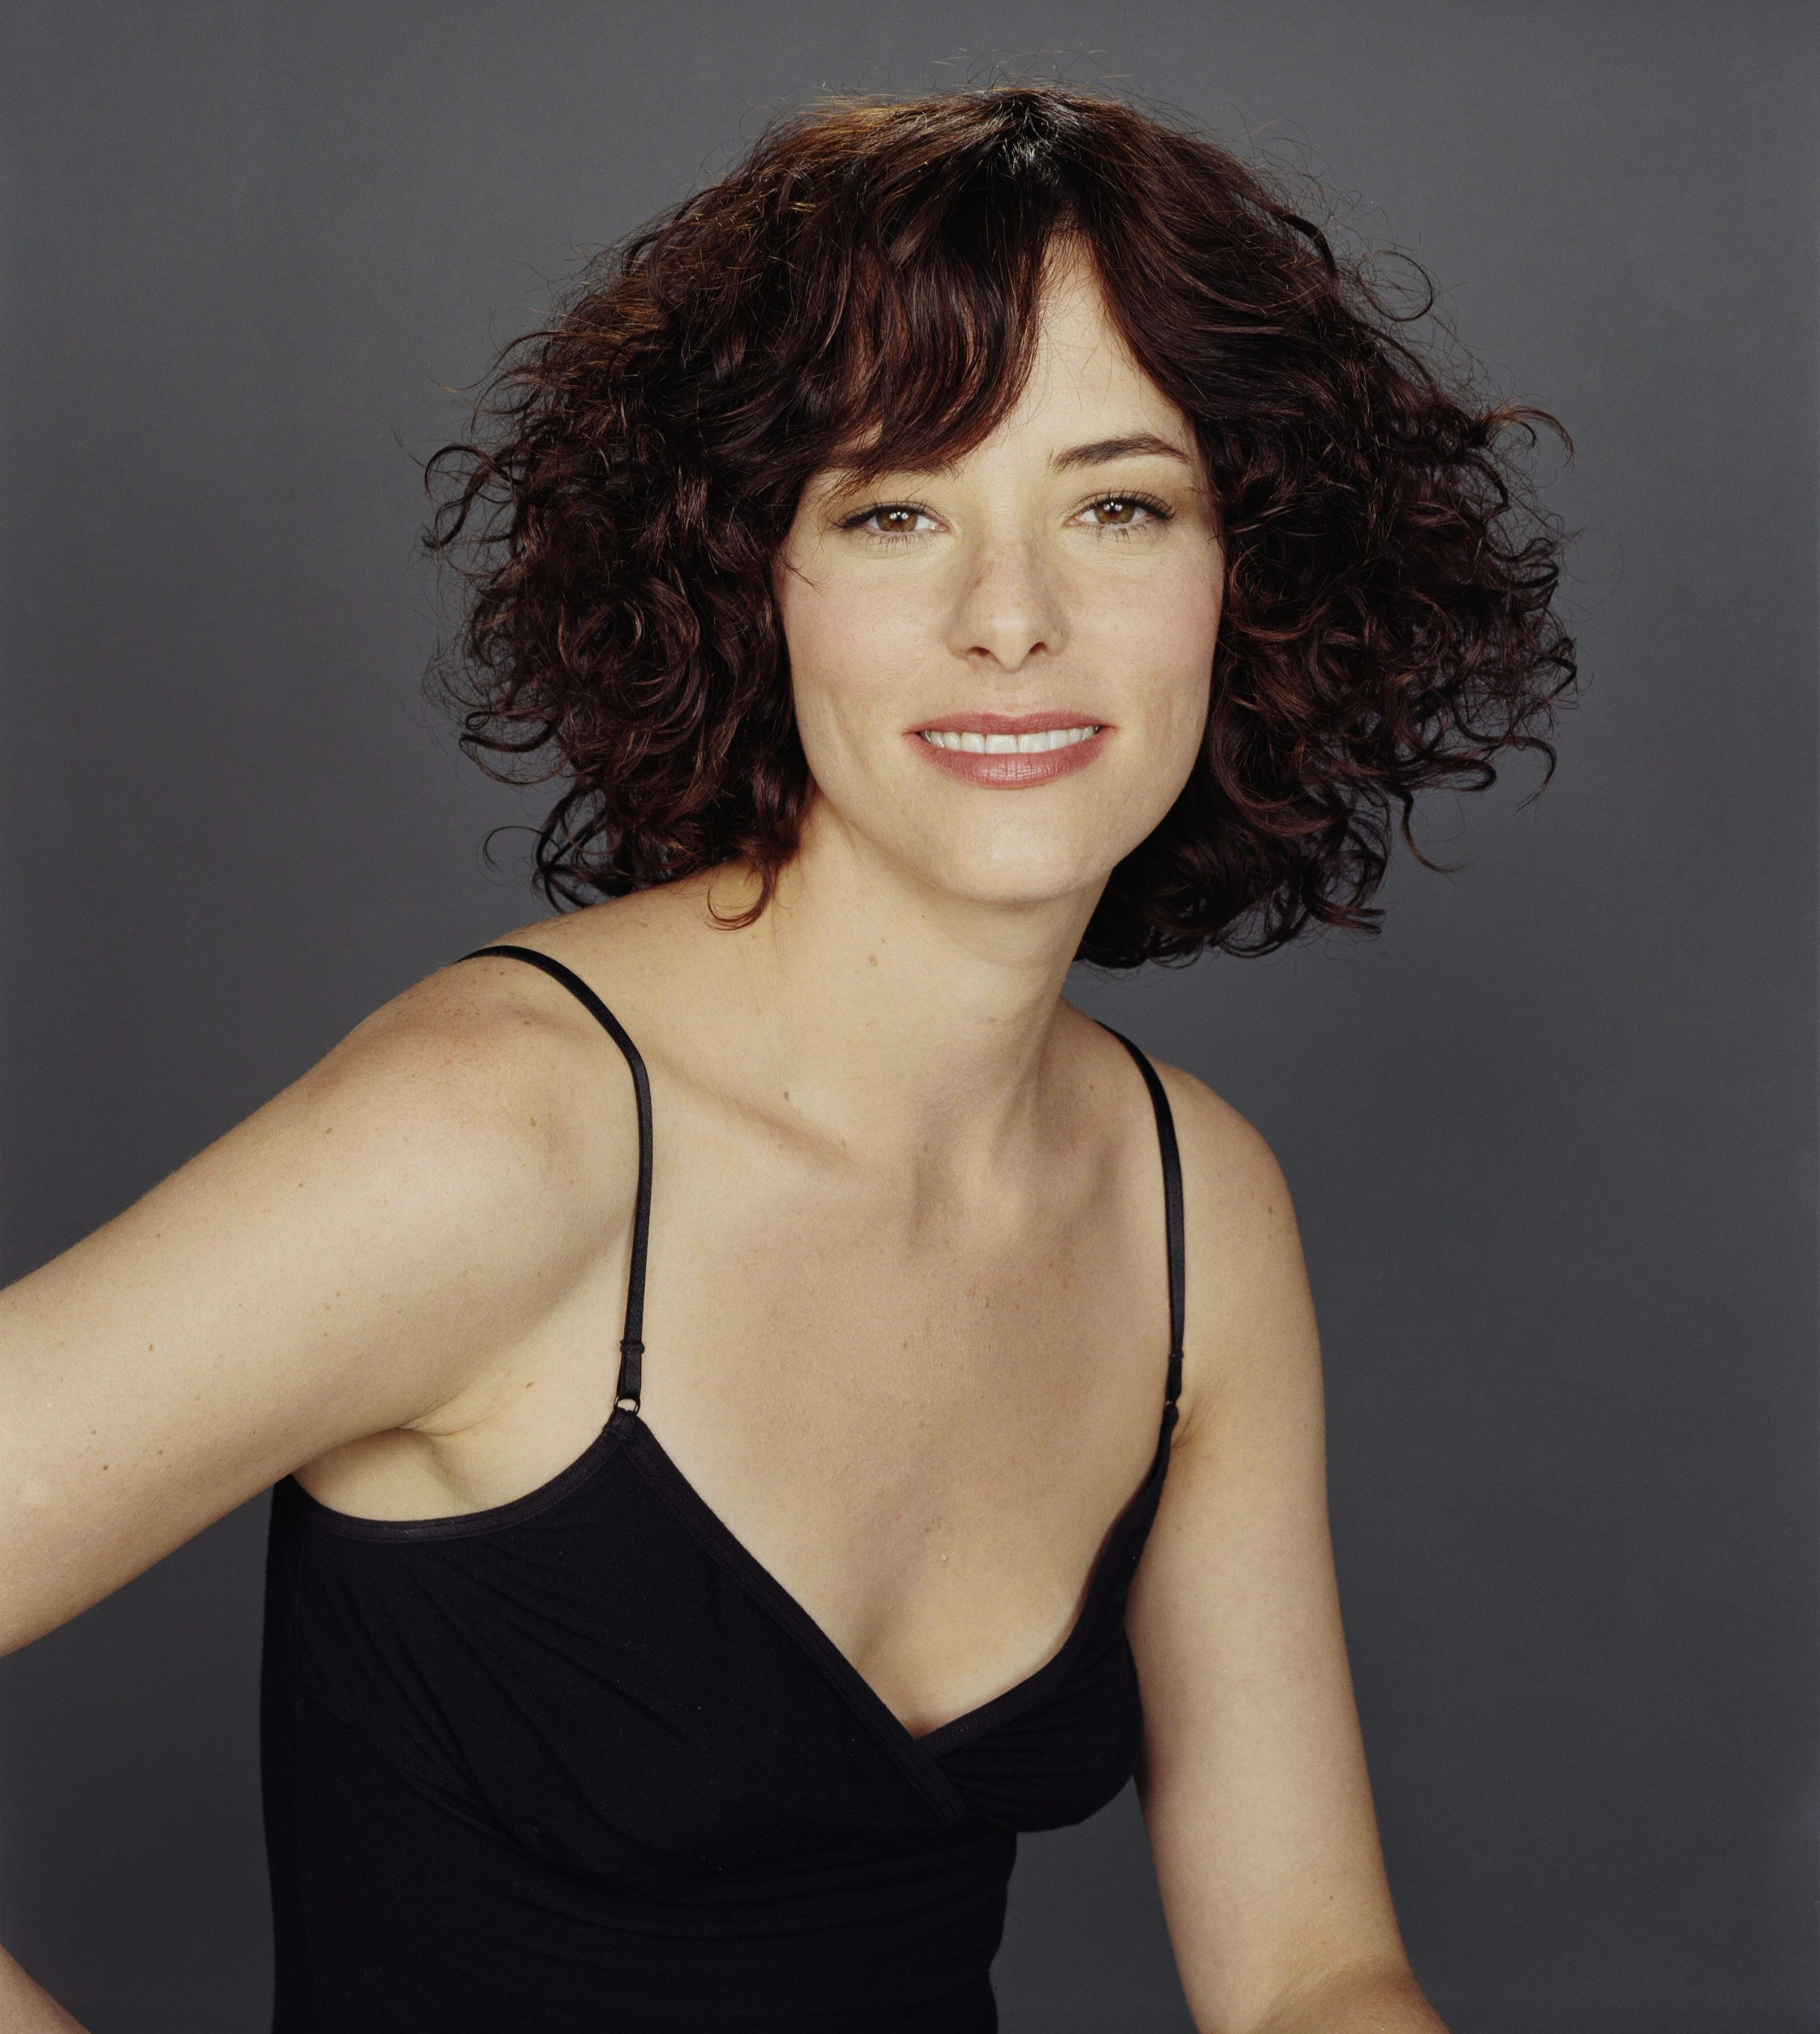 Parker Posey gives a sexy look in her cleavage showing dress and messy hair.